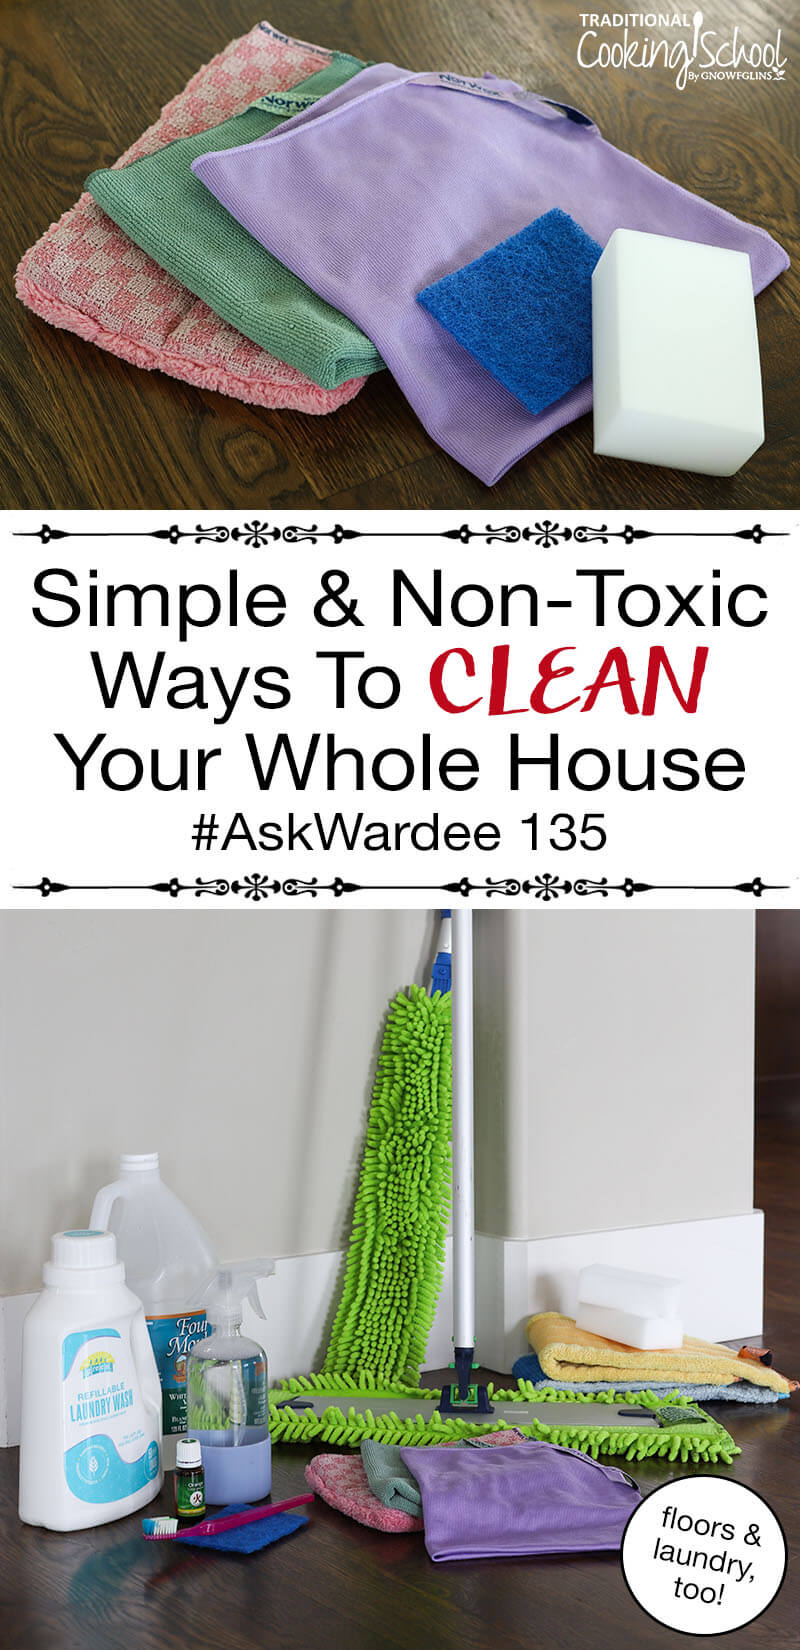 """photo collage of nontoxic cleaners, including laundry detergent, Norwex products like the dusting wand, mop, and cloths, essential oils, and more; with text overlay: """"Simple & Non-Toxic Ways To Clean Your Whole House (floors & laundry, too!) #AskWardee 135"""""""